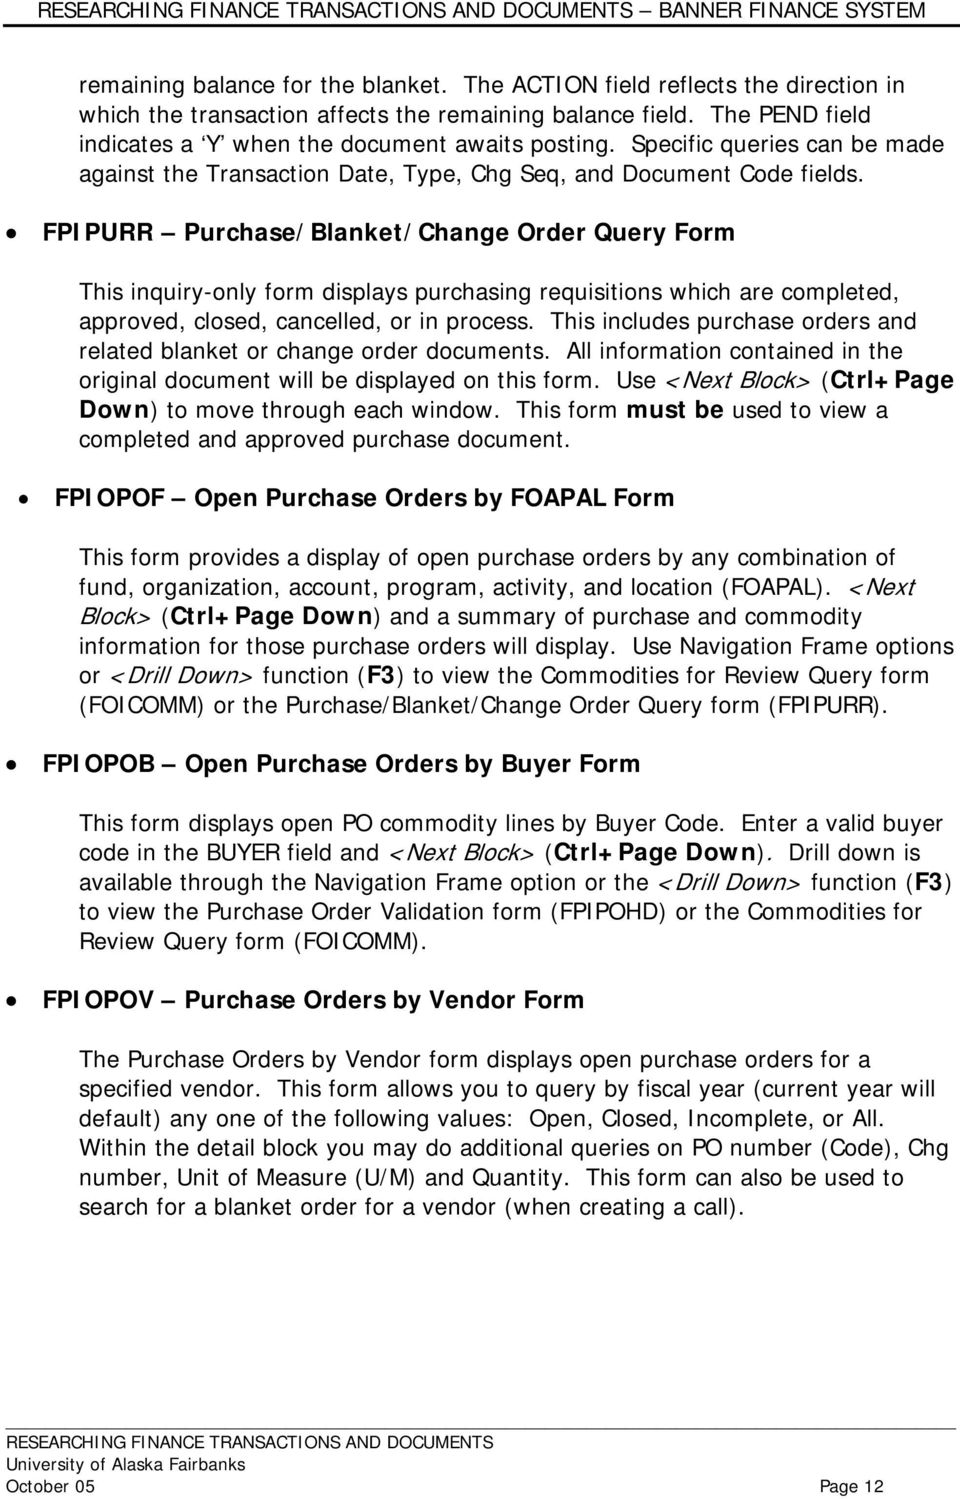 FPIPURR Purchase/Blanket/Change Order Query Form This inquiry-only form displays purchasing requisitions which are completed, approved, closed, cancelled, or in process.